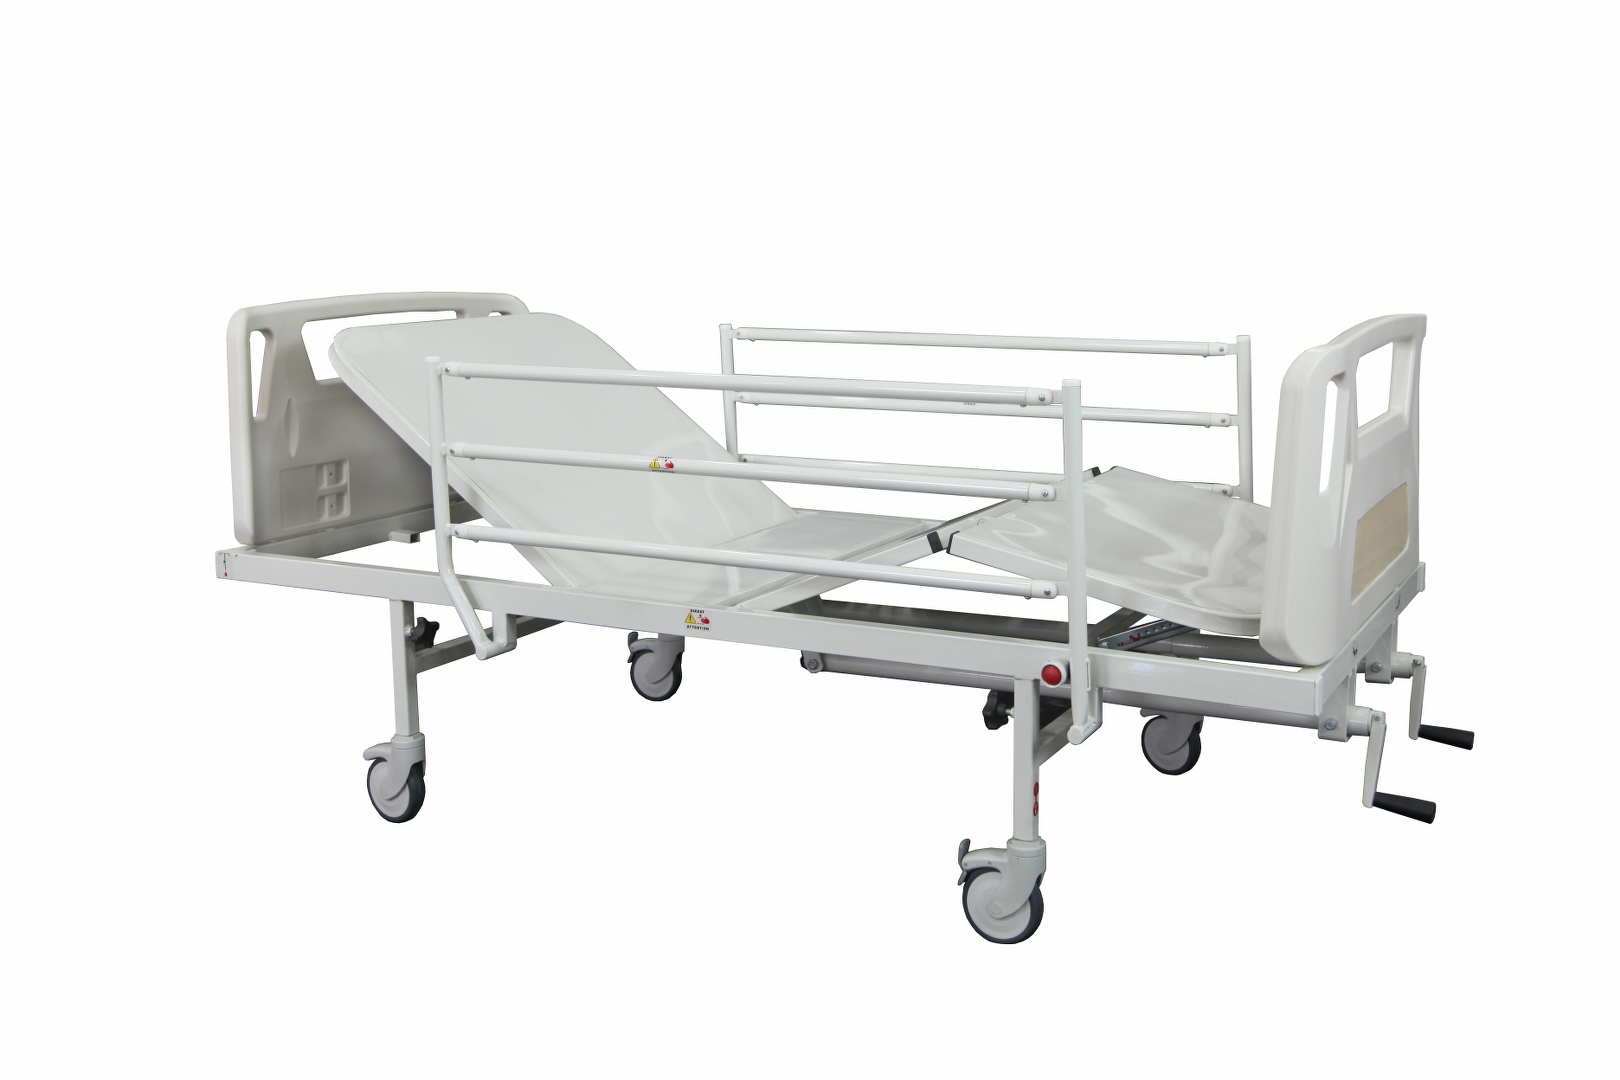 HKM-CC20 MECHANICAL HOSPITAL BED WITH 2 ADJUSTMENT Detail 1